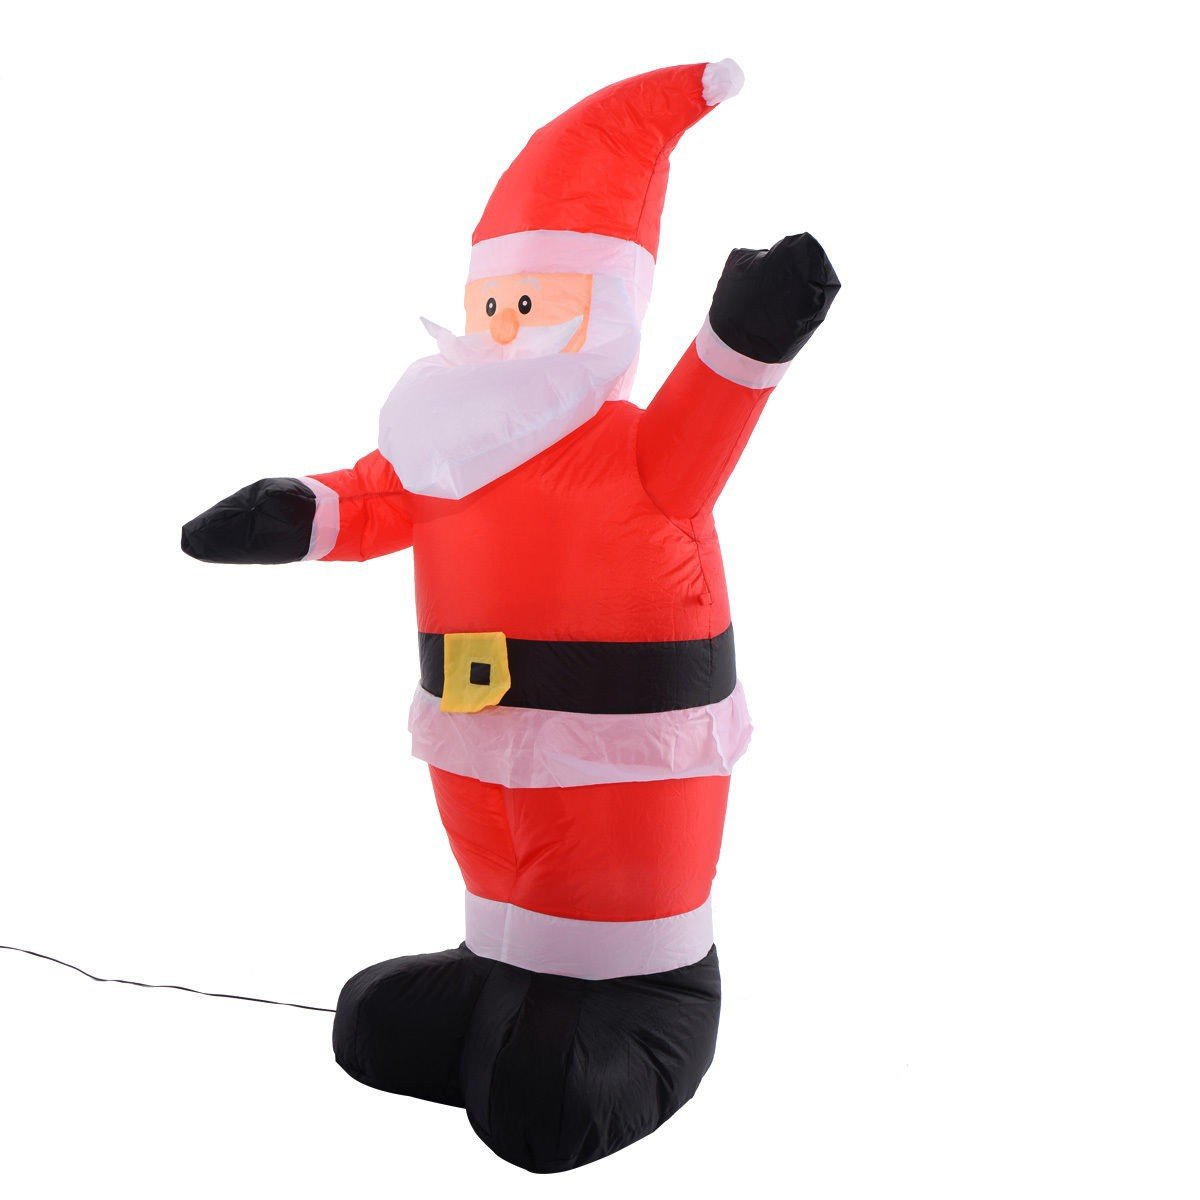 4 ft Airblown Inflatable Christmas Santa Claus Lighted Decoration ...